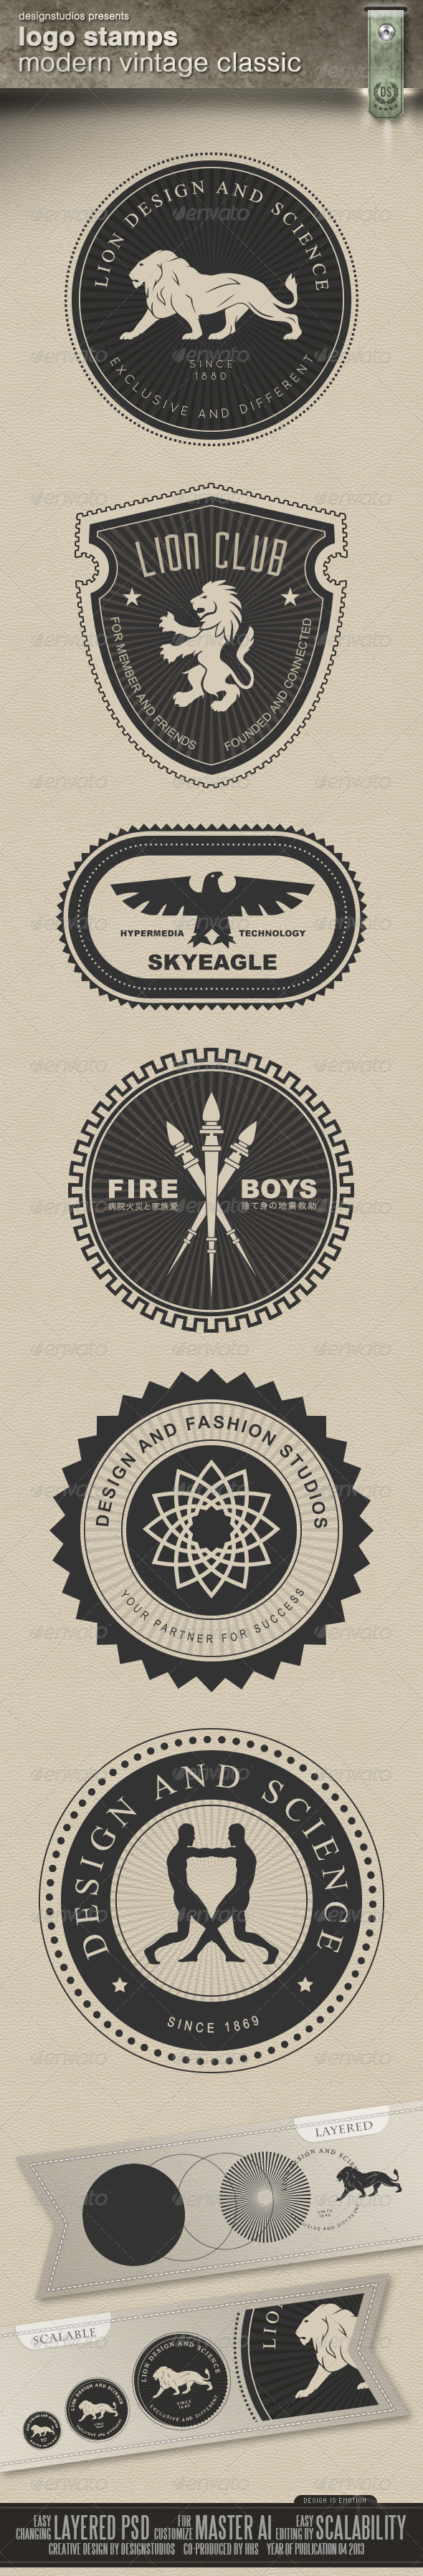 GraphicRiver Logo Stamps Modern Vintage Classic 4495501